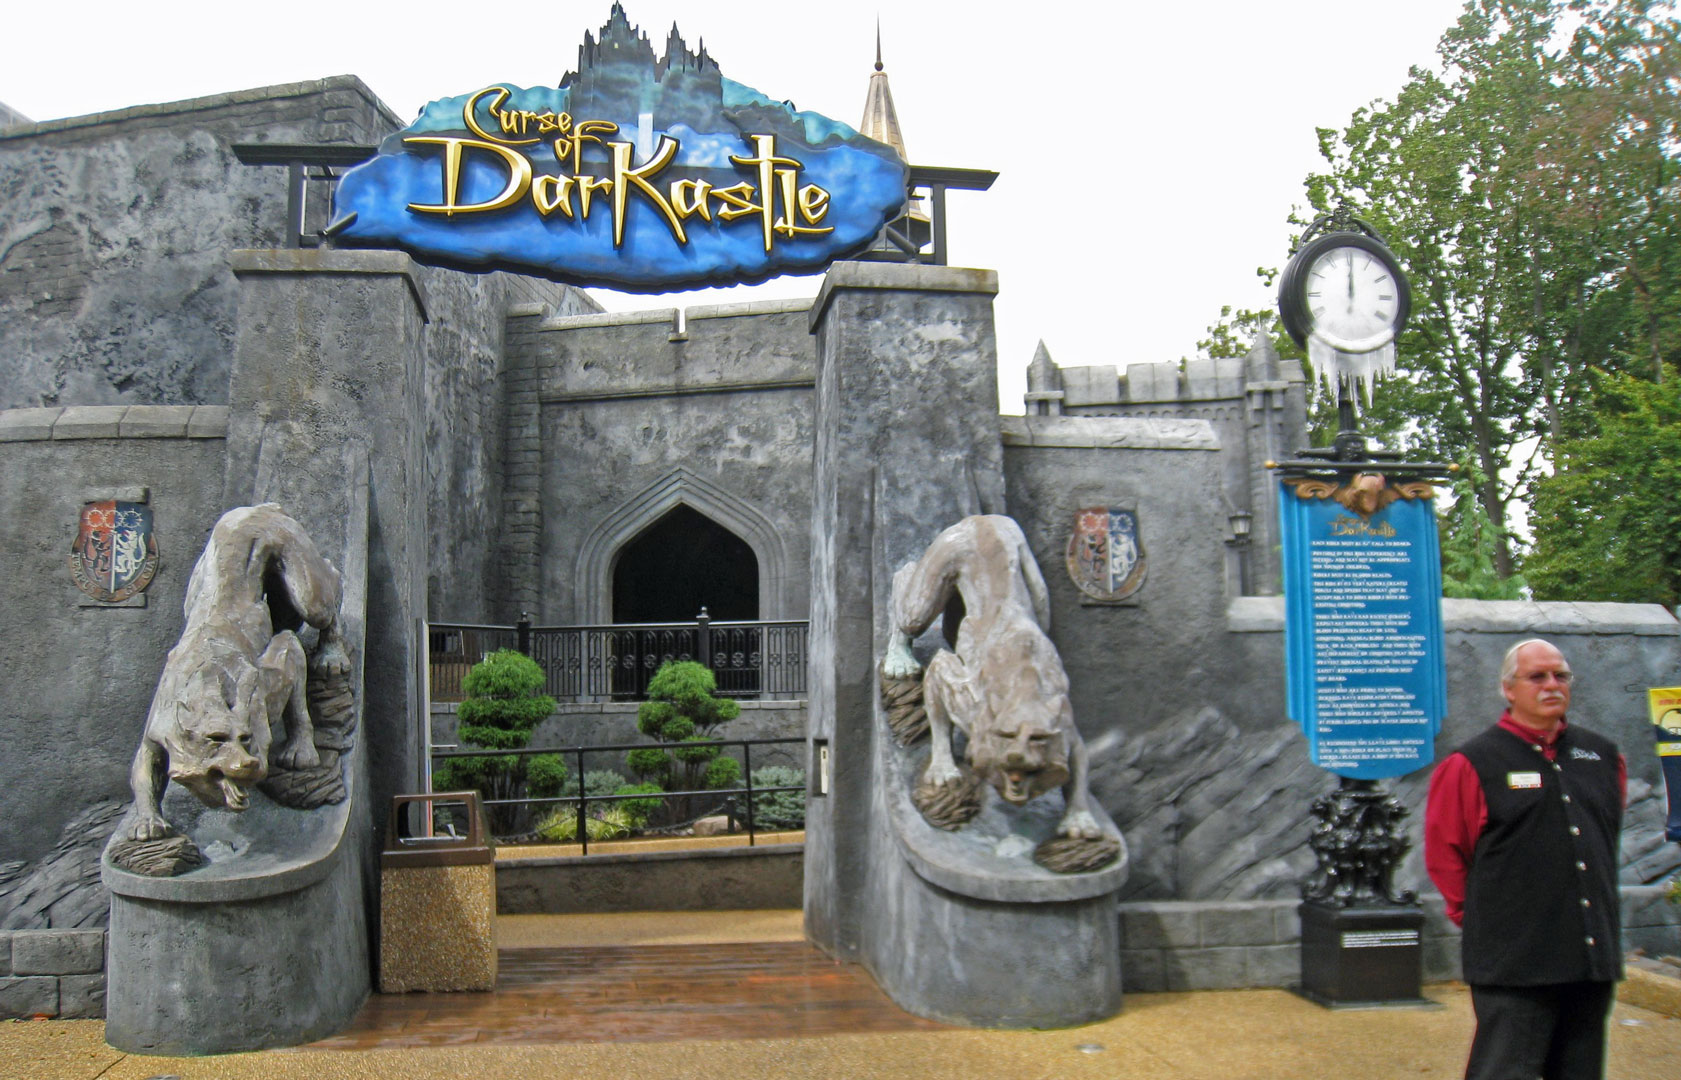 Busch gardens closes curse of darkastle coasterforce - Busch gardens williamsburg halloween ...